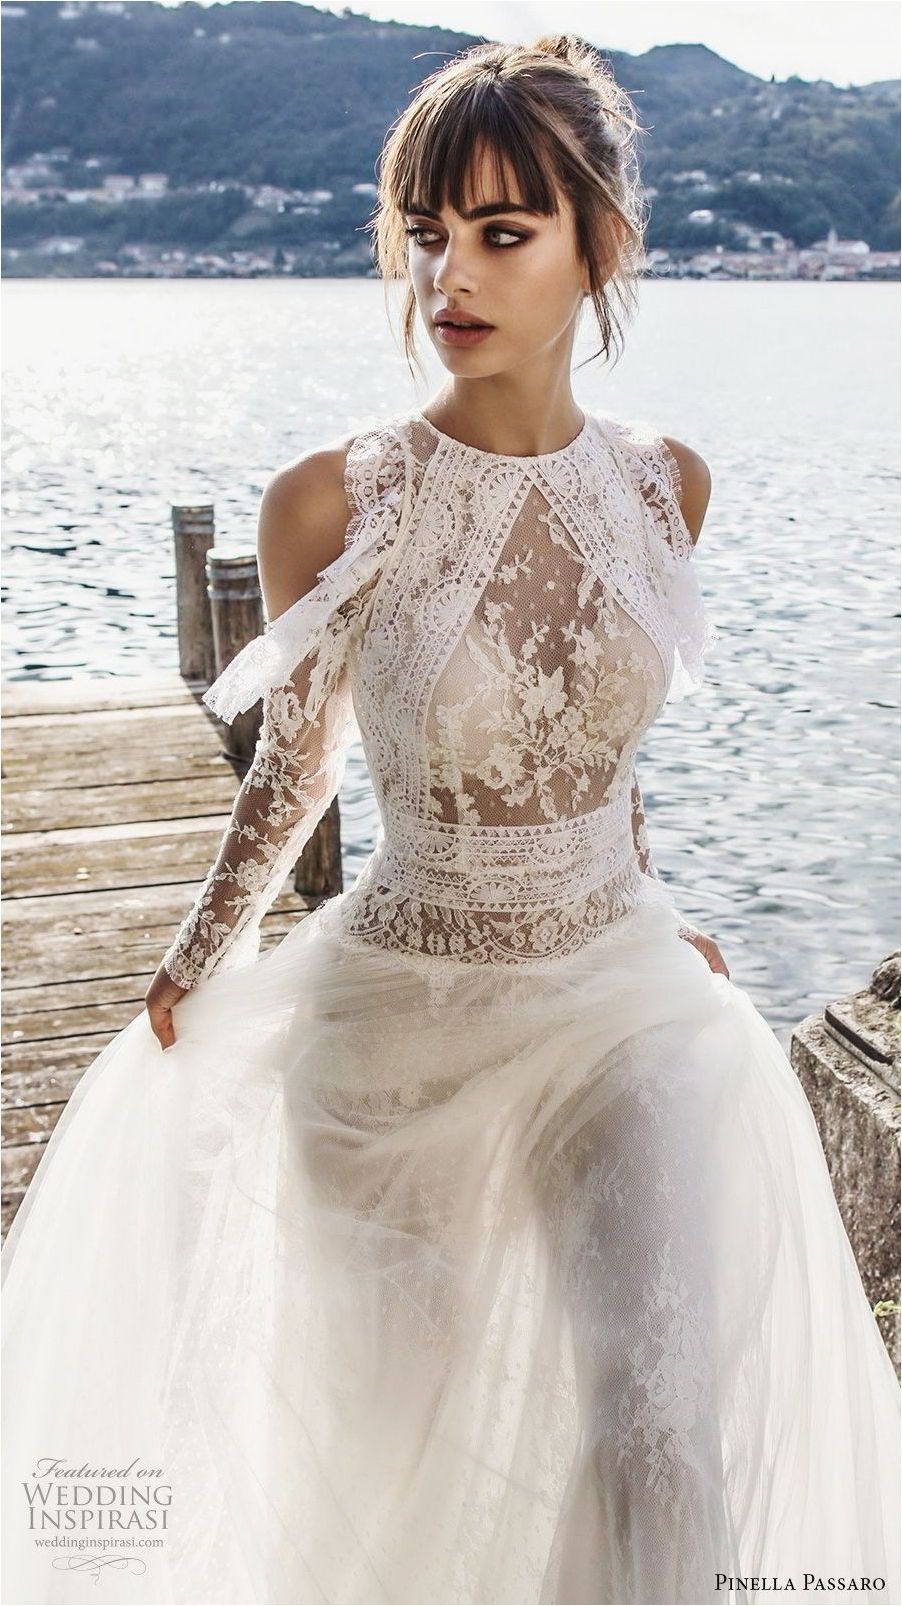 Country Wedding Dresses Take A Look At Your Fantasy Bridal Wear From The International Top Developers Grea Wedding Dresses Bridal Dresses Wedding Dresses Lace